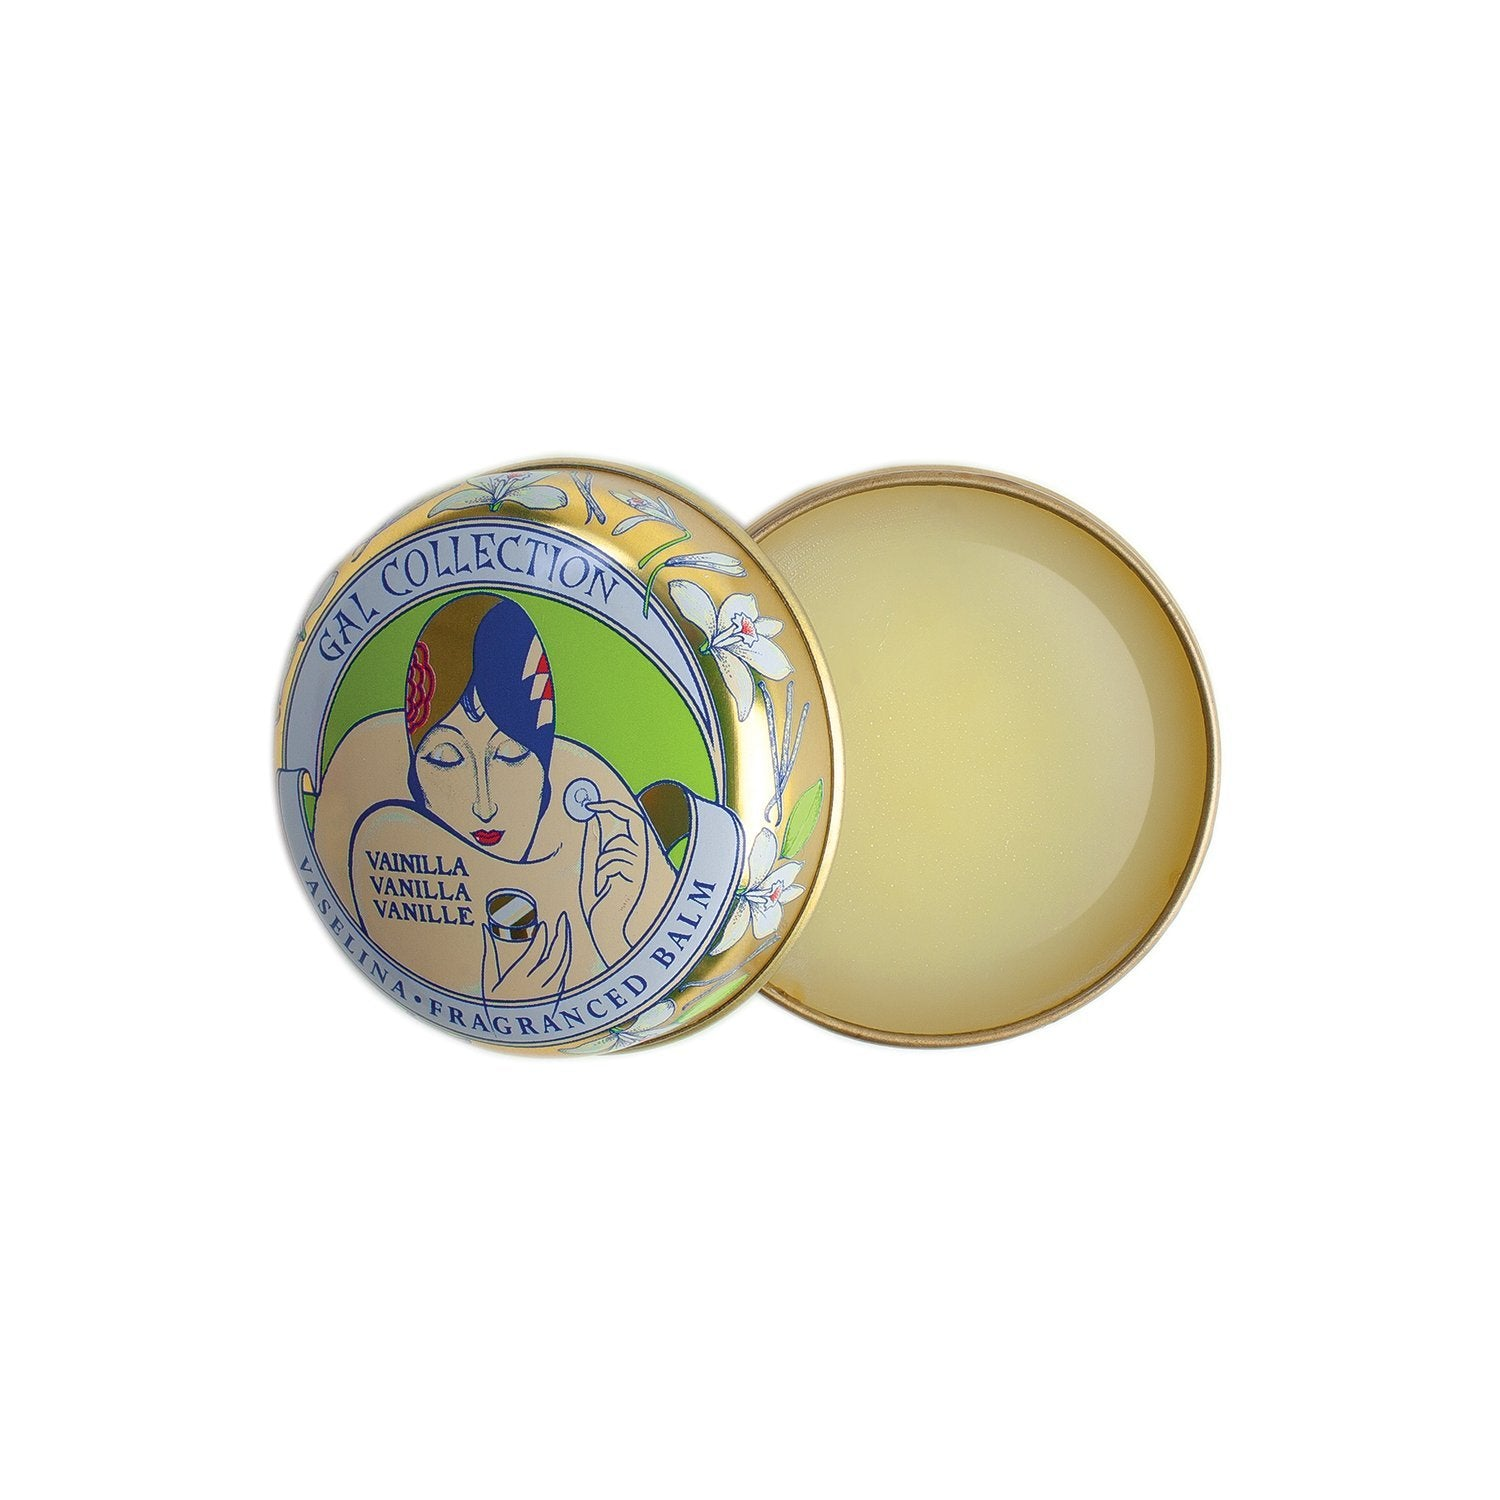 Gal Collection Classic Vanilla Lip Balm - Wanderlustre